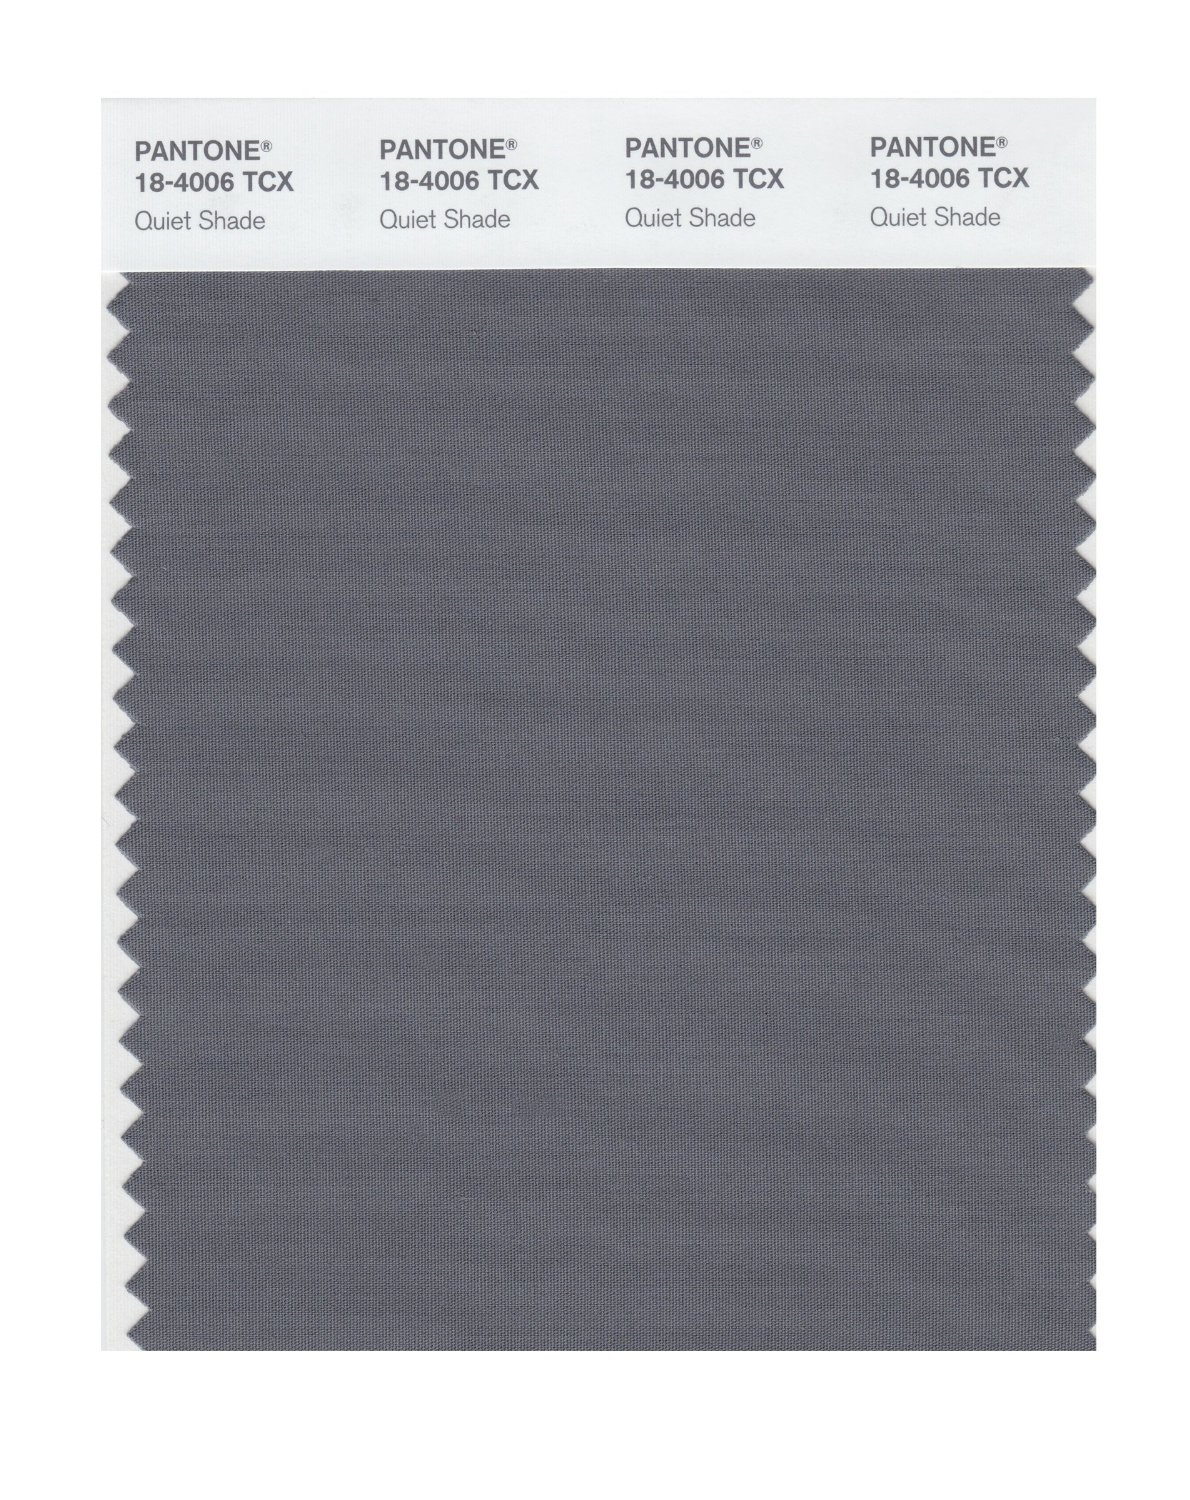 Pantone Smart Swatch 18-4006 Quiet Shade